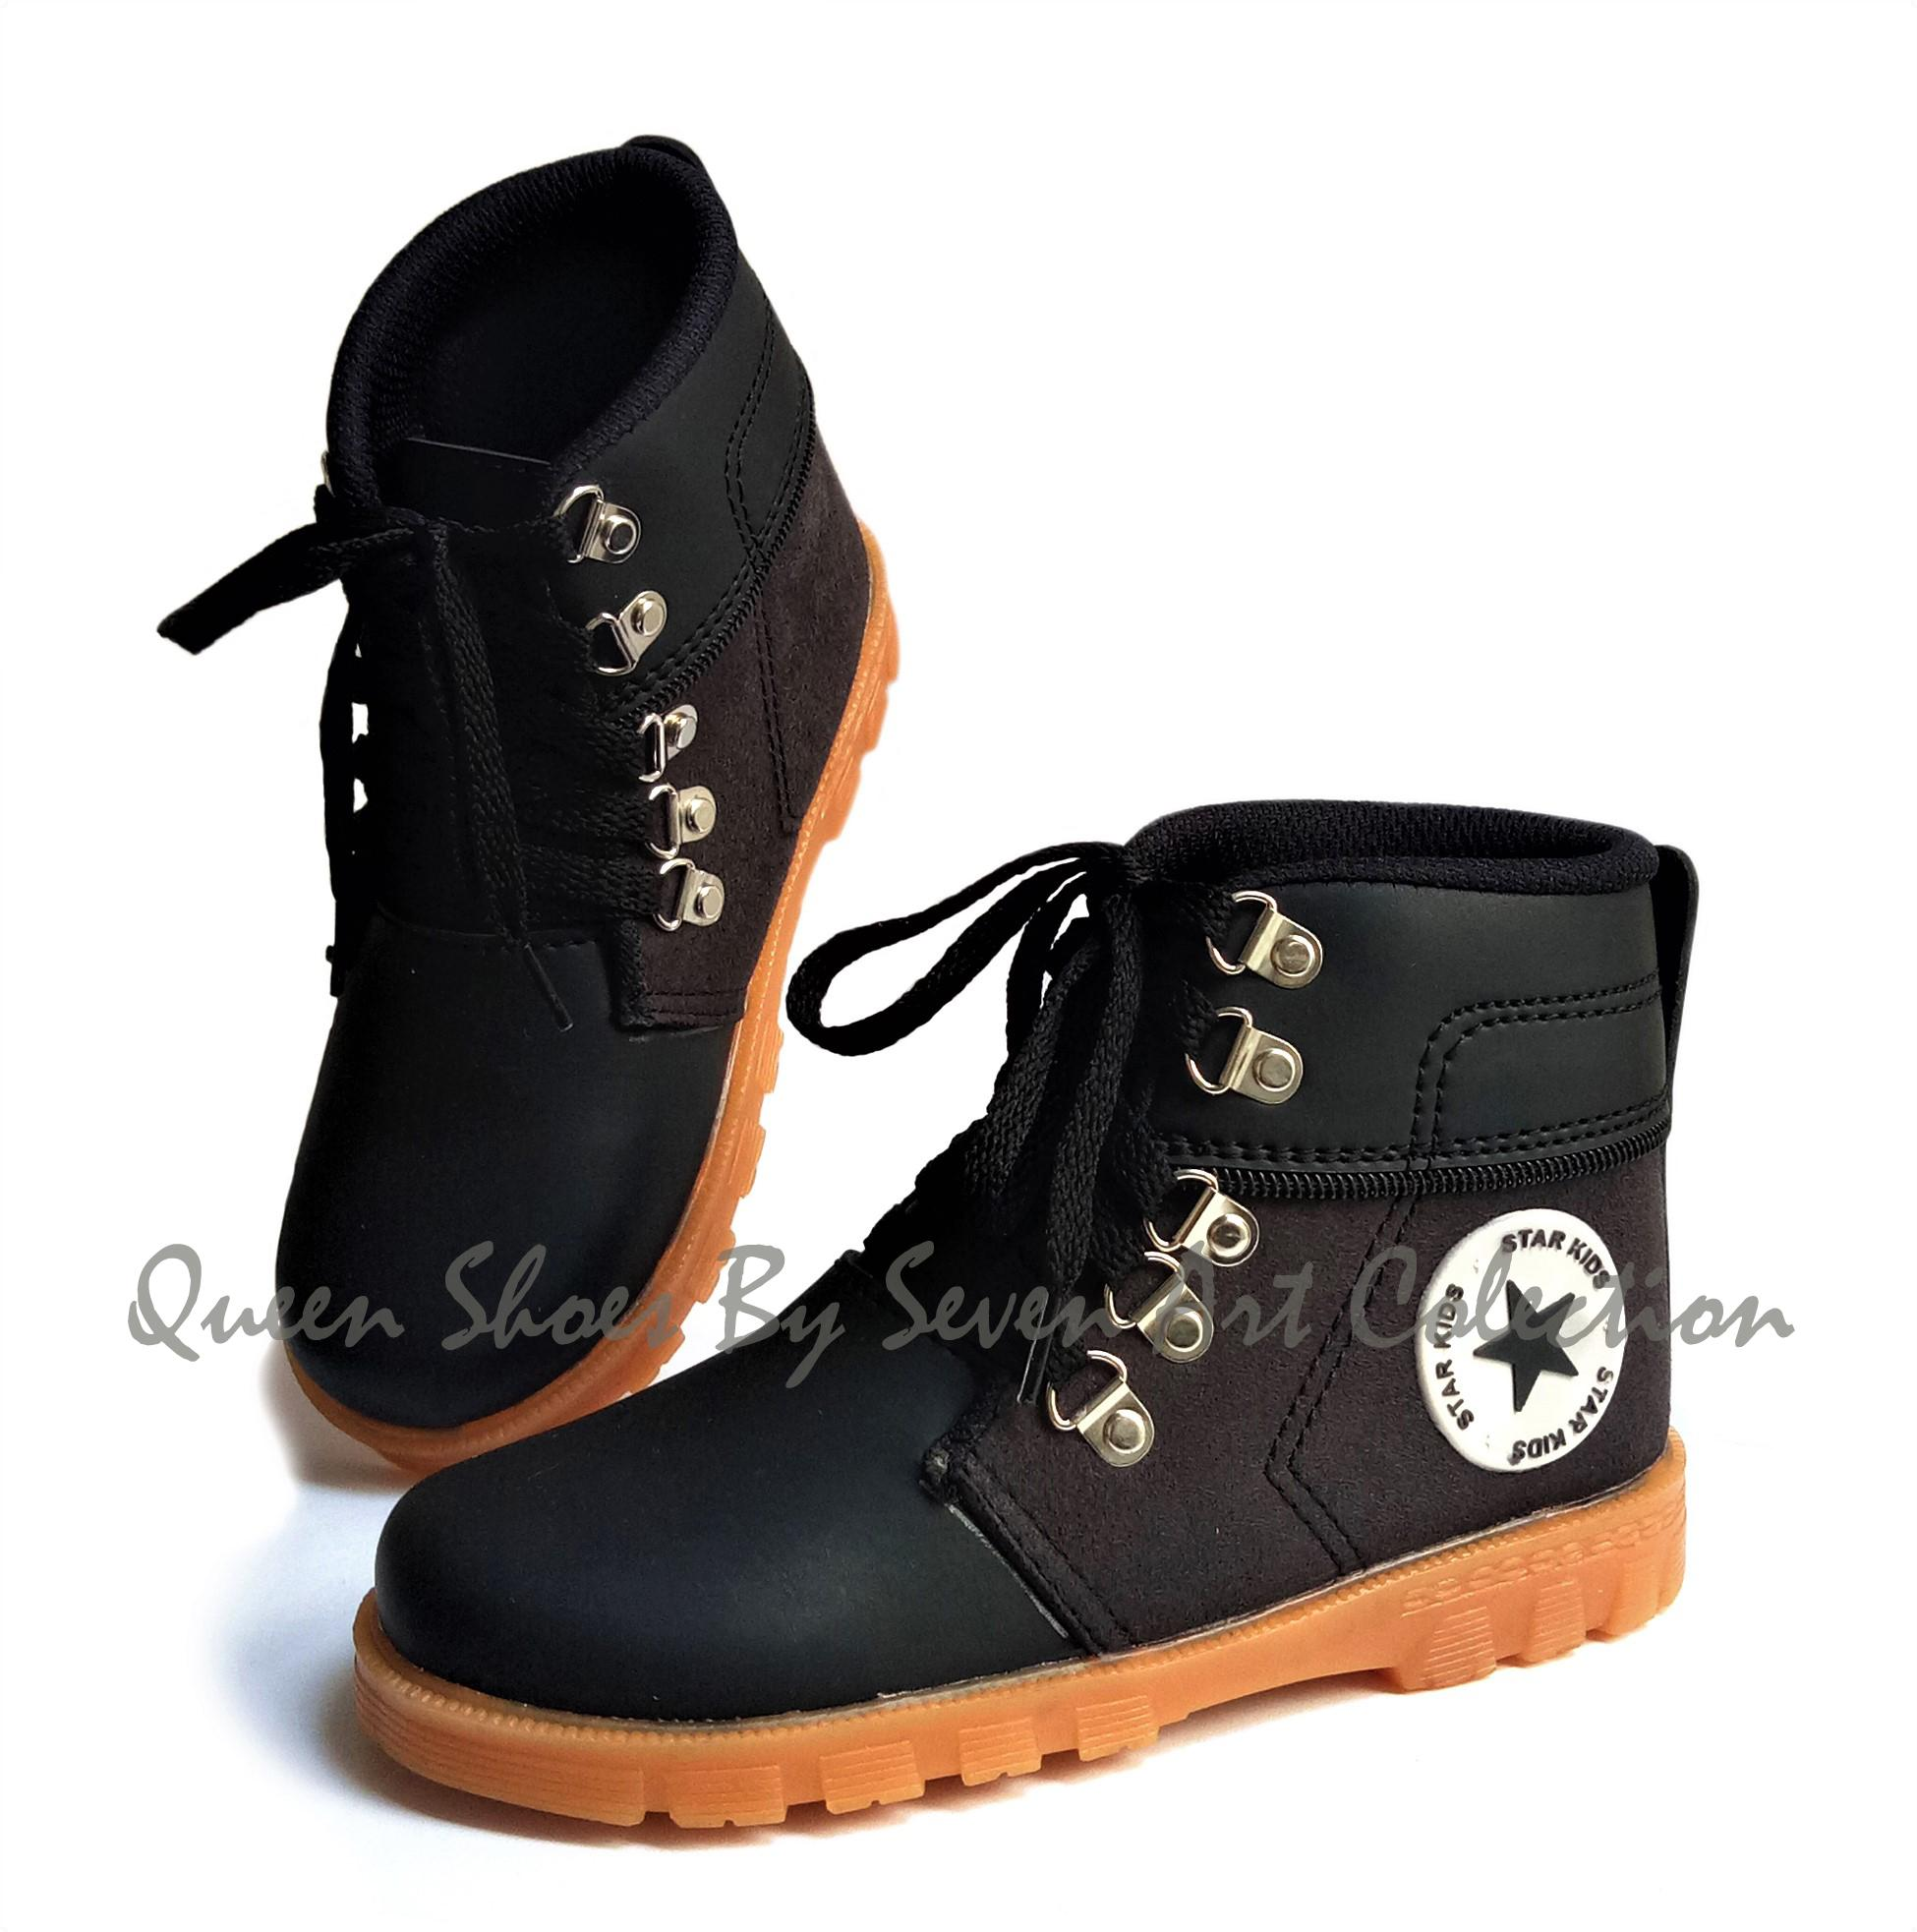 Seven Sepatu Boot Anak Laki Laki - Md By Queen Shoes.